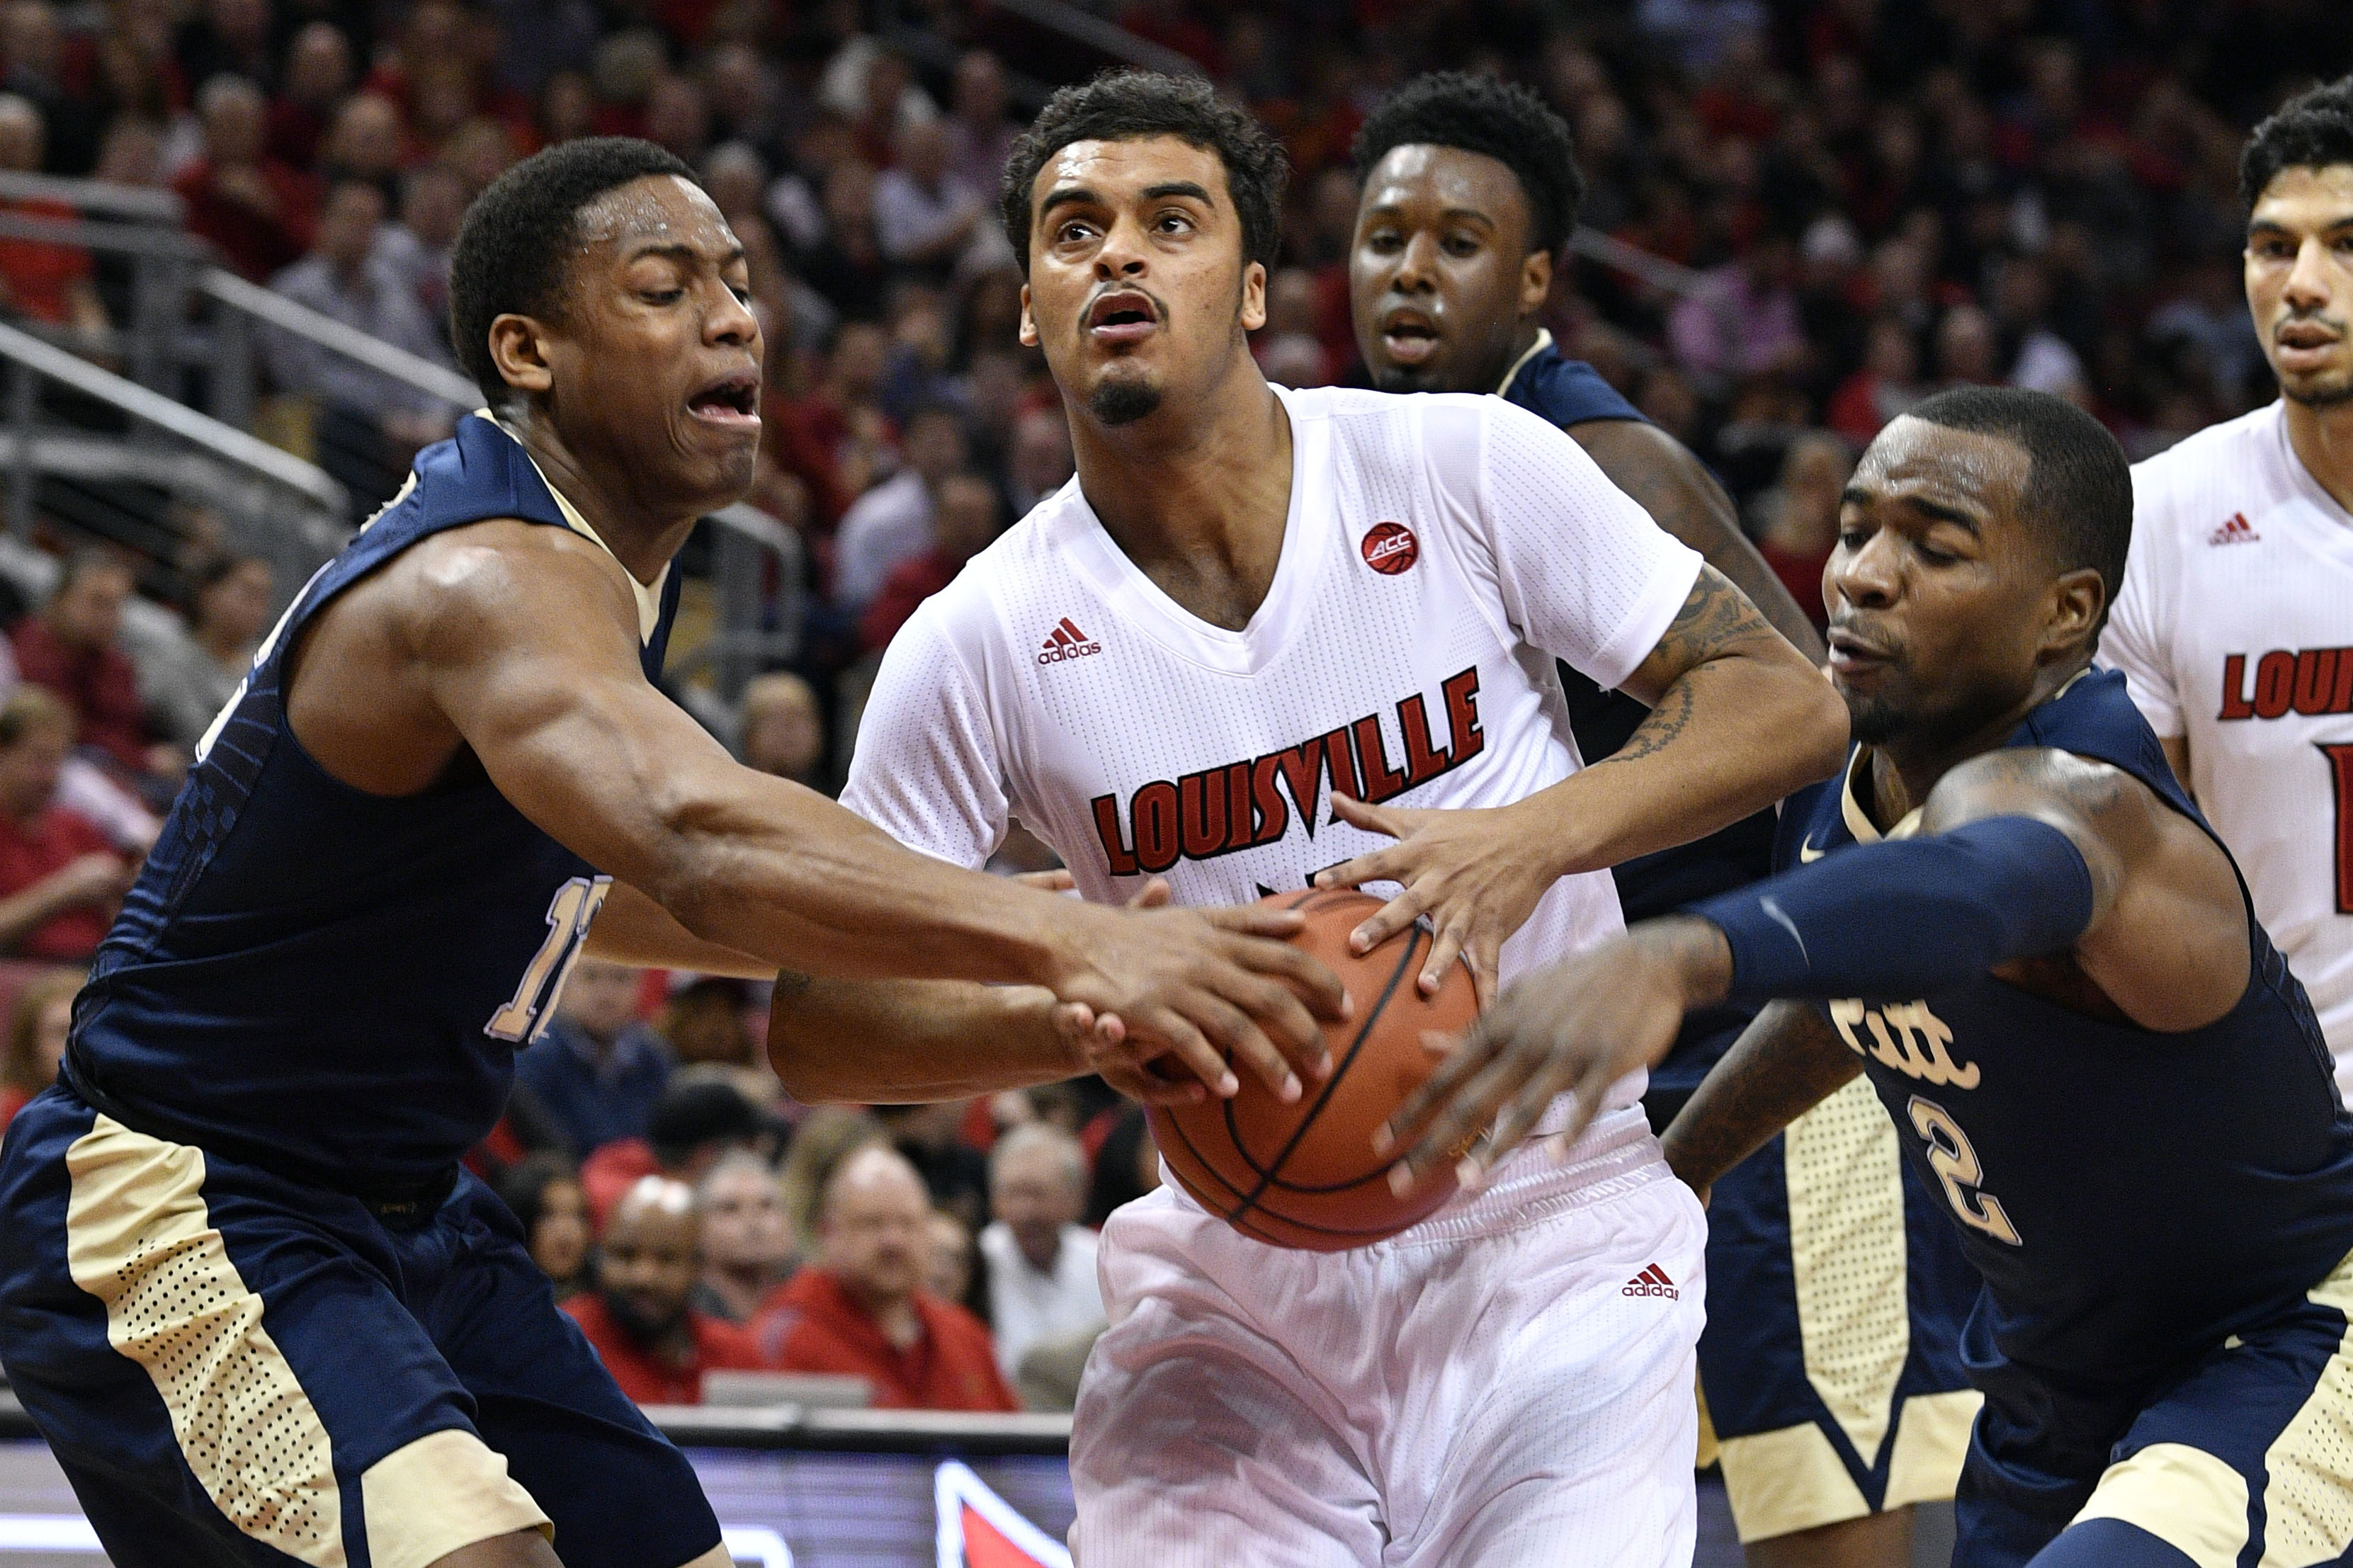 No. 8 Louisville outlasts Syracuse in overtime, 76-72